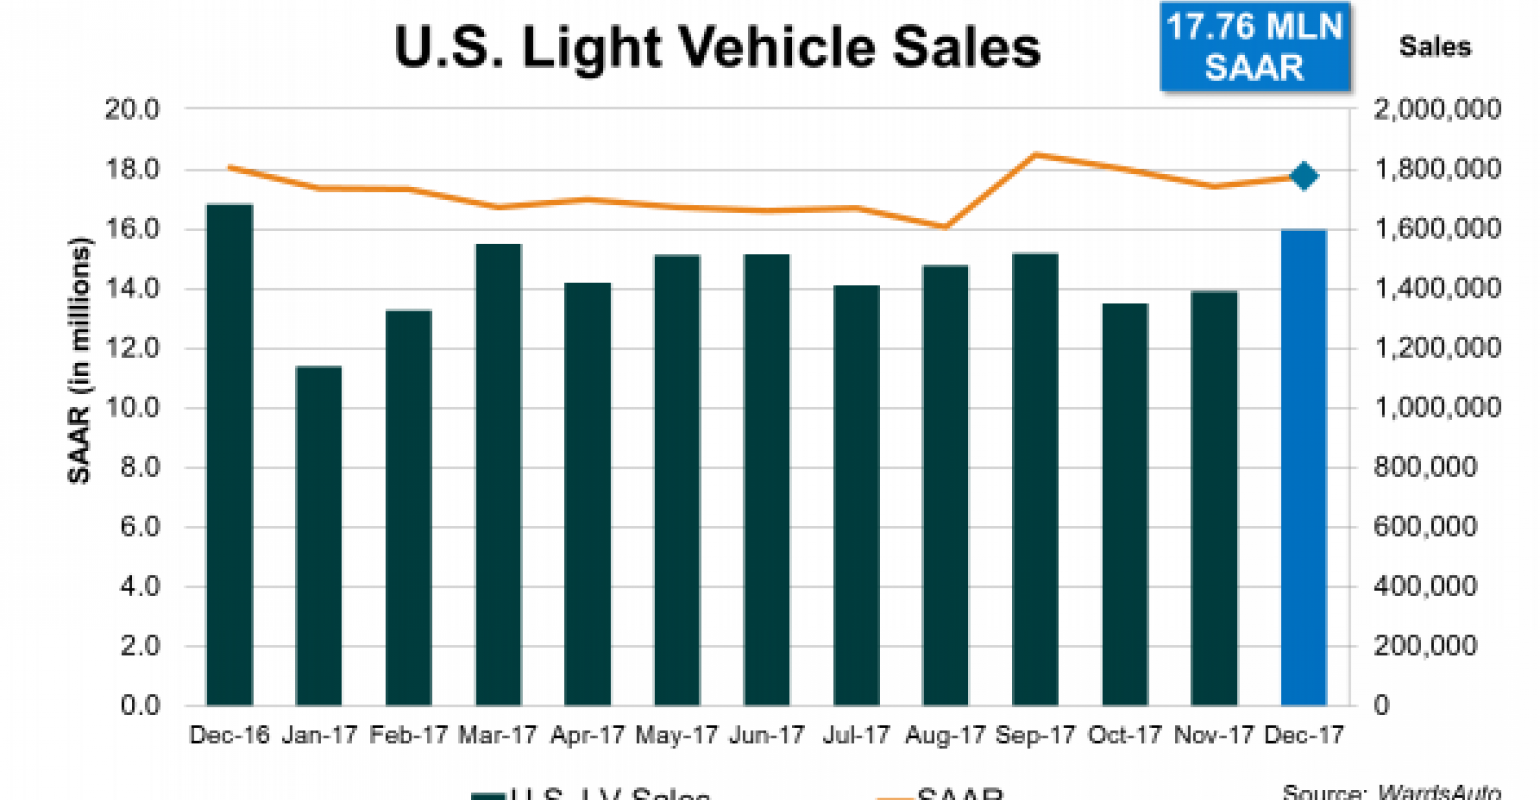 Us Vehicle Sales By Year >> U S Light Vehicle Sales Top 17 Million Third Straight Year In 2017